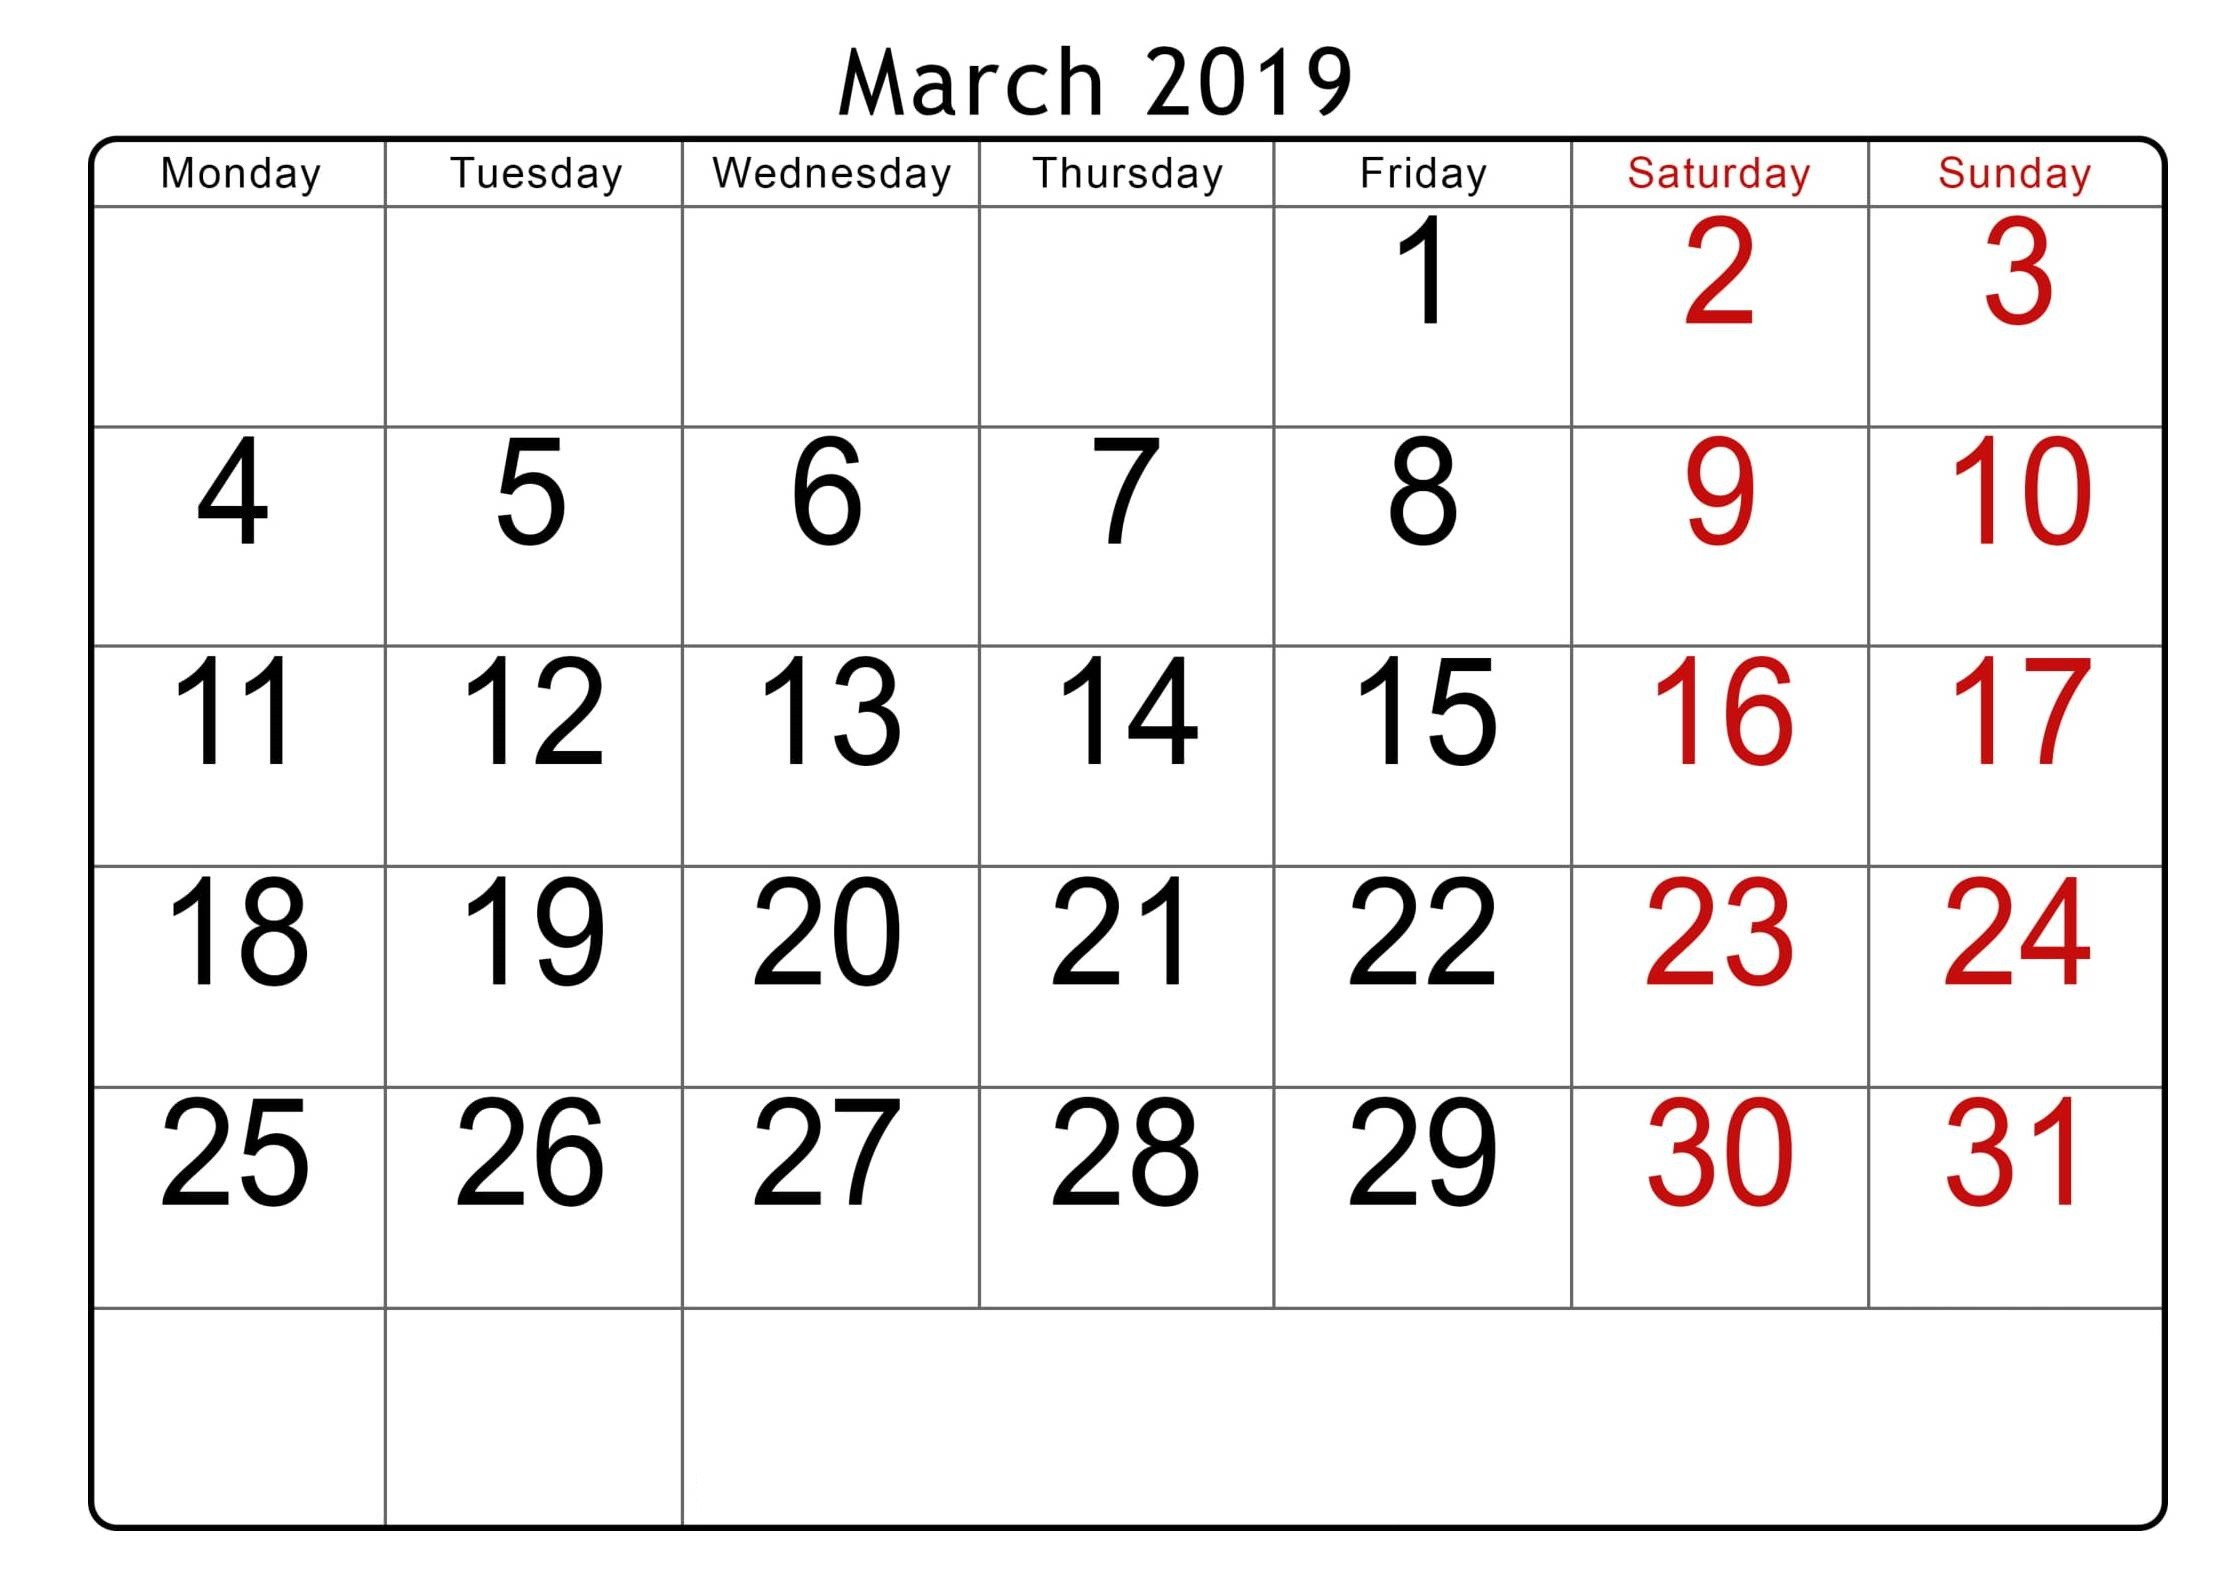 March Calendar 2019 Recientes March Calendar for 2019 Pdf Printable 2019 Calendar Of March Calendar 2019 Más Actual Odia Calendar 2019 with March Odishain